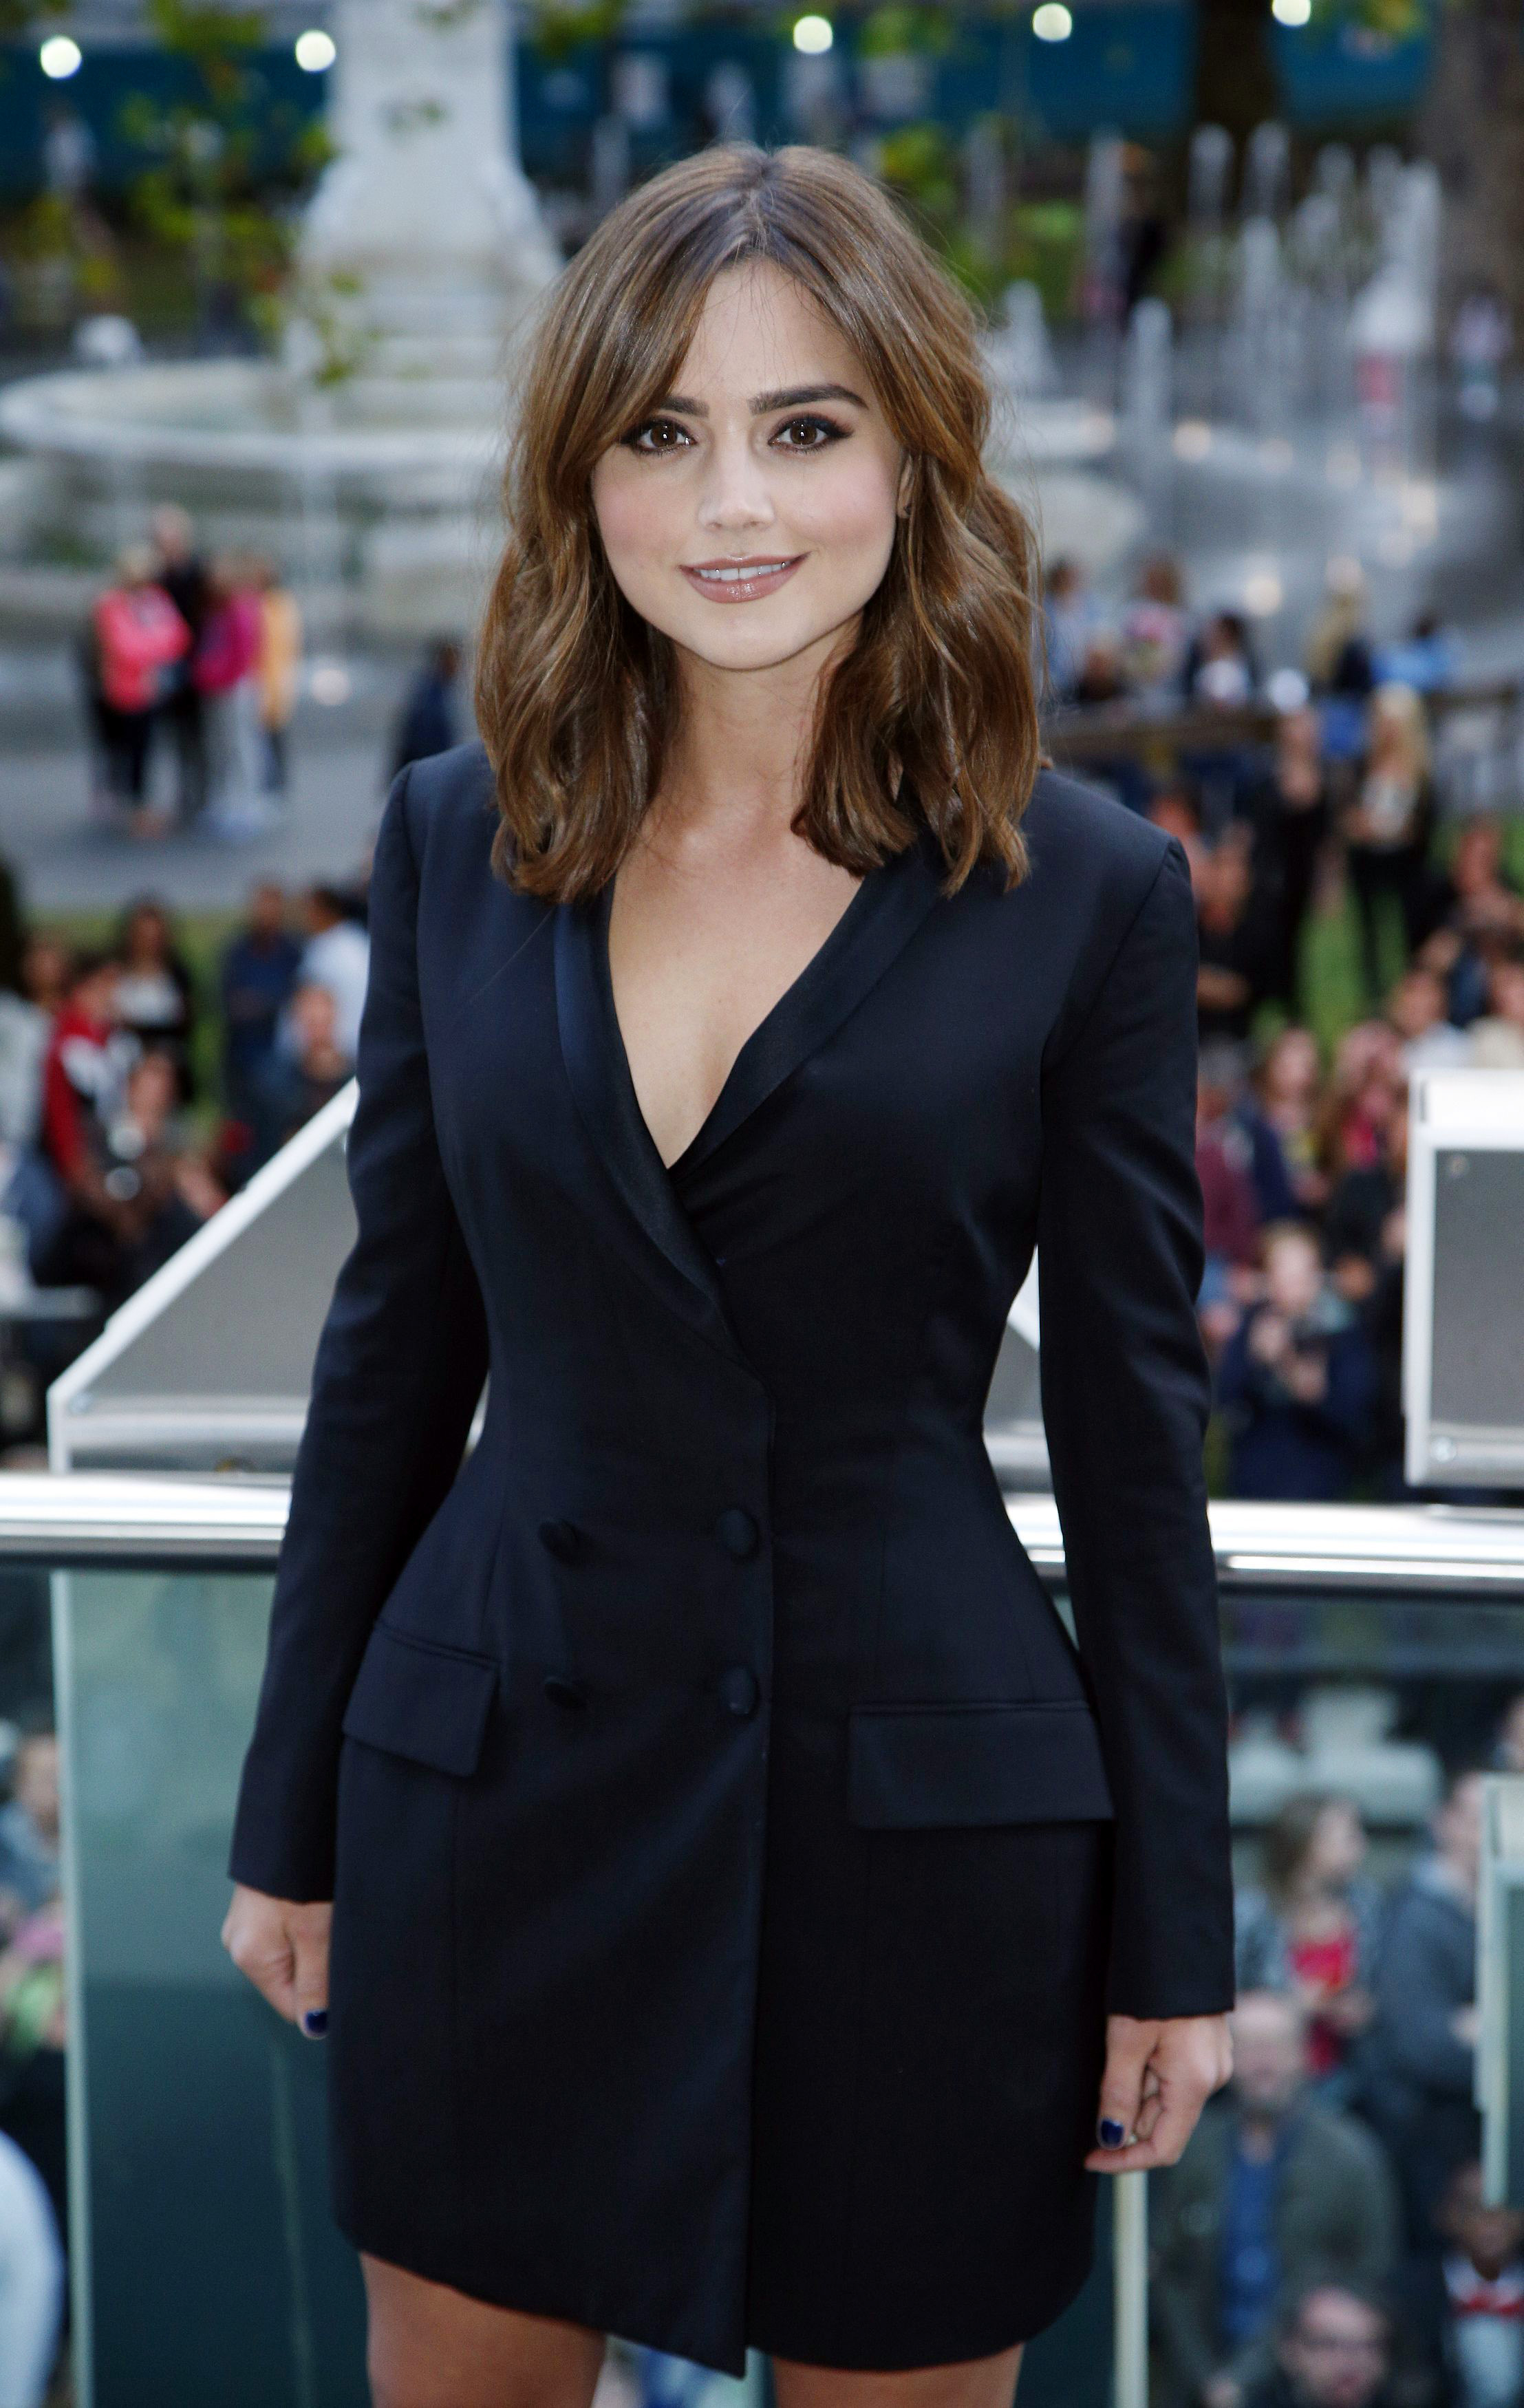 Jenna Coleman: 'I can't wait to tell the young Queen Victoria's story!' |  News | Doctor Who | What's on TV